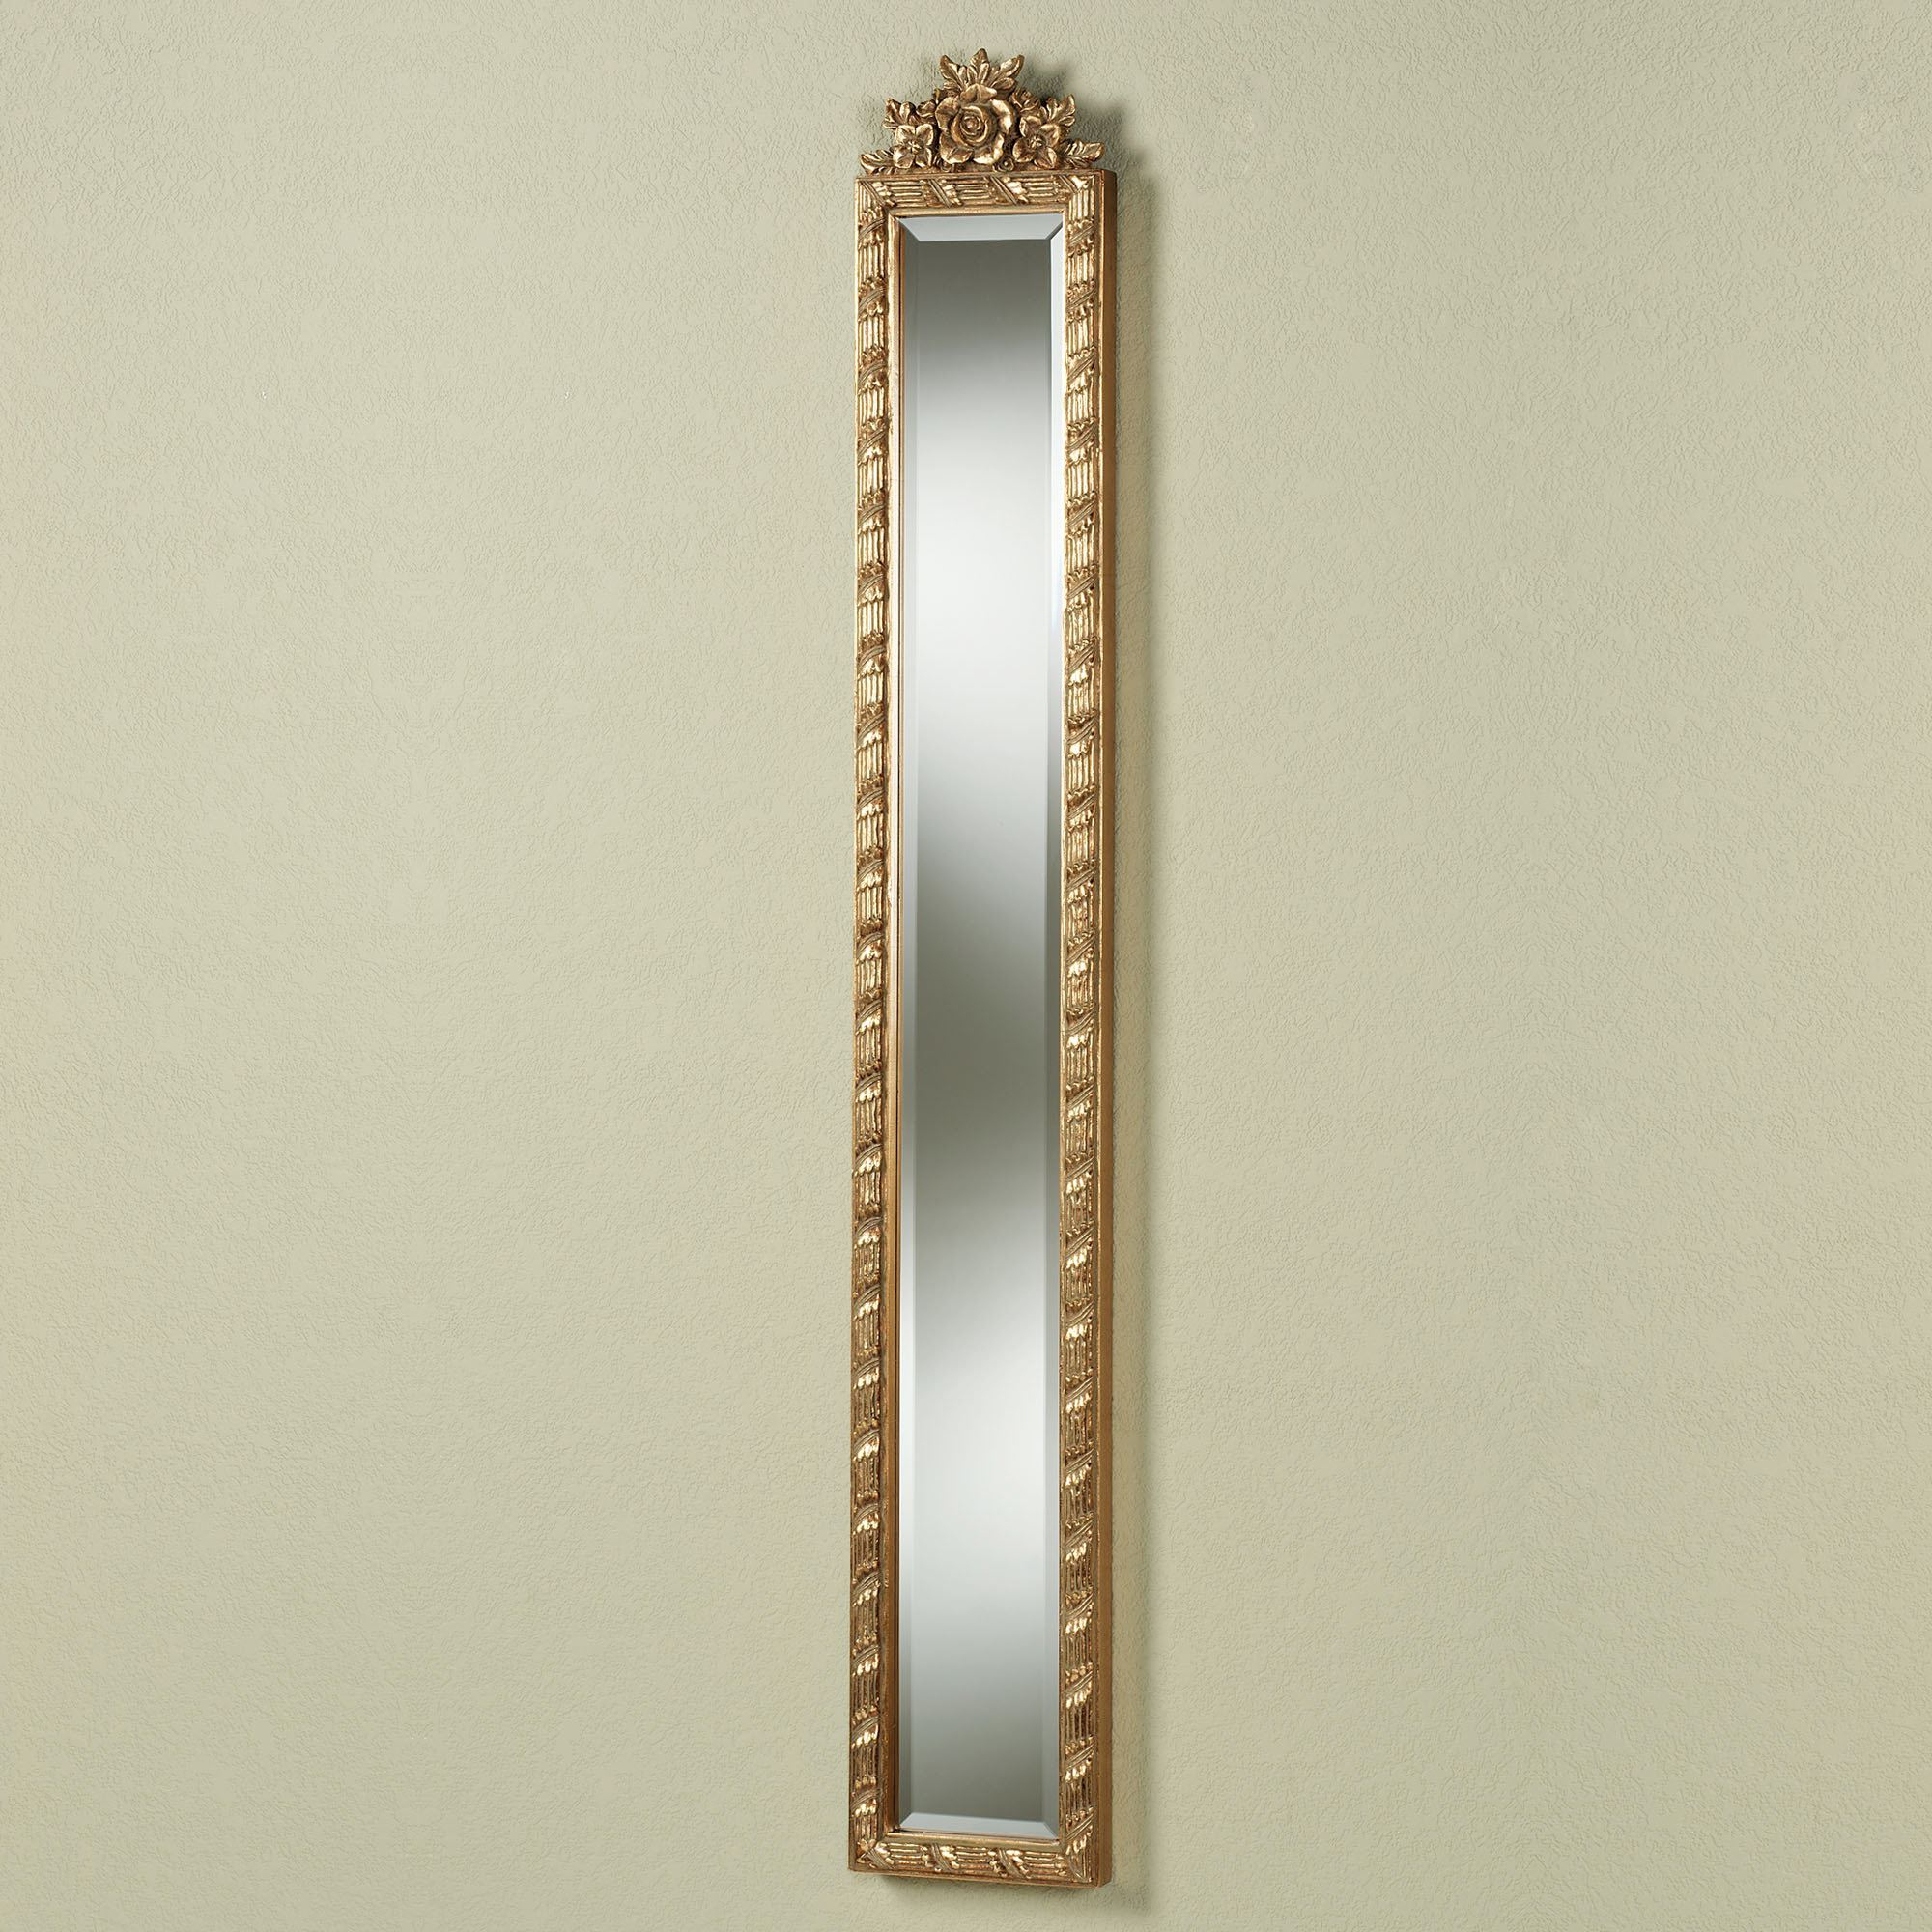 Gold Wall Mirrors Within 2019 Giuliana Antique Gold Floral Wall Mirror Panel (View 8 of 20)